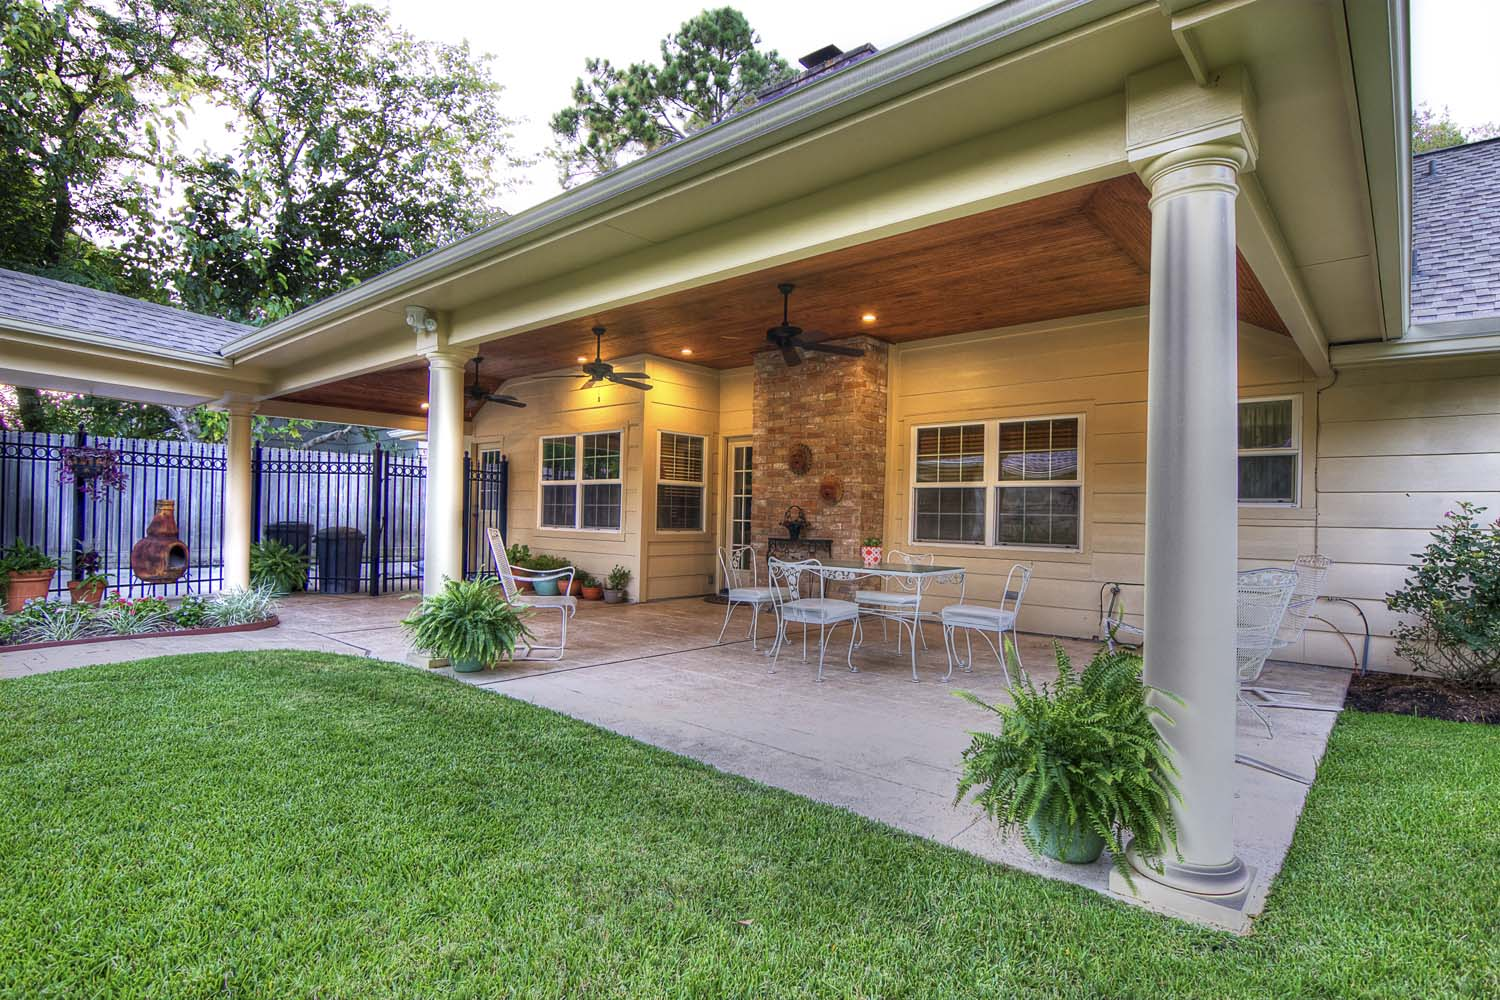 Patio Cover in Katy, Texas - HHI Patio Covers on Backyard Patio Covers  id=21147